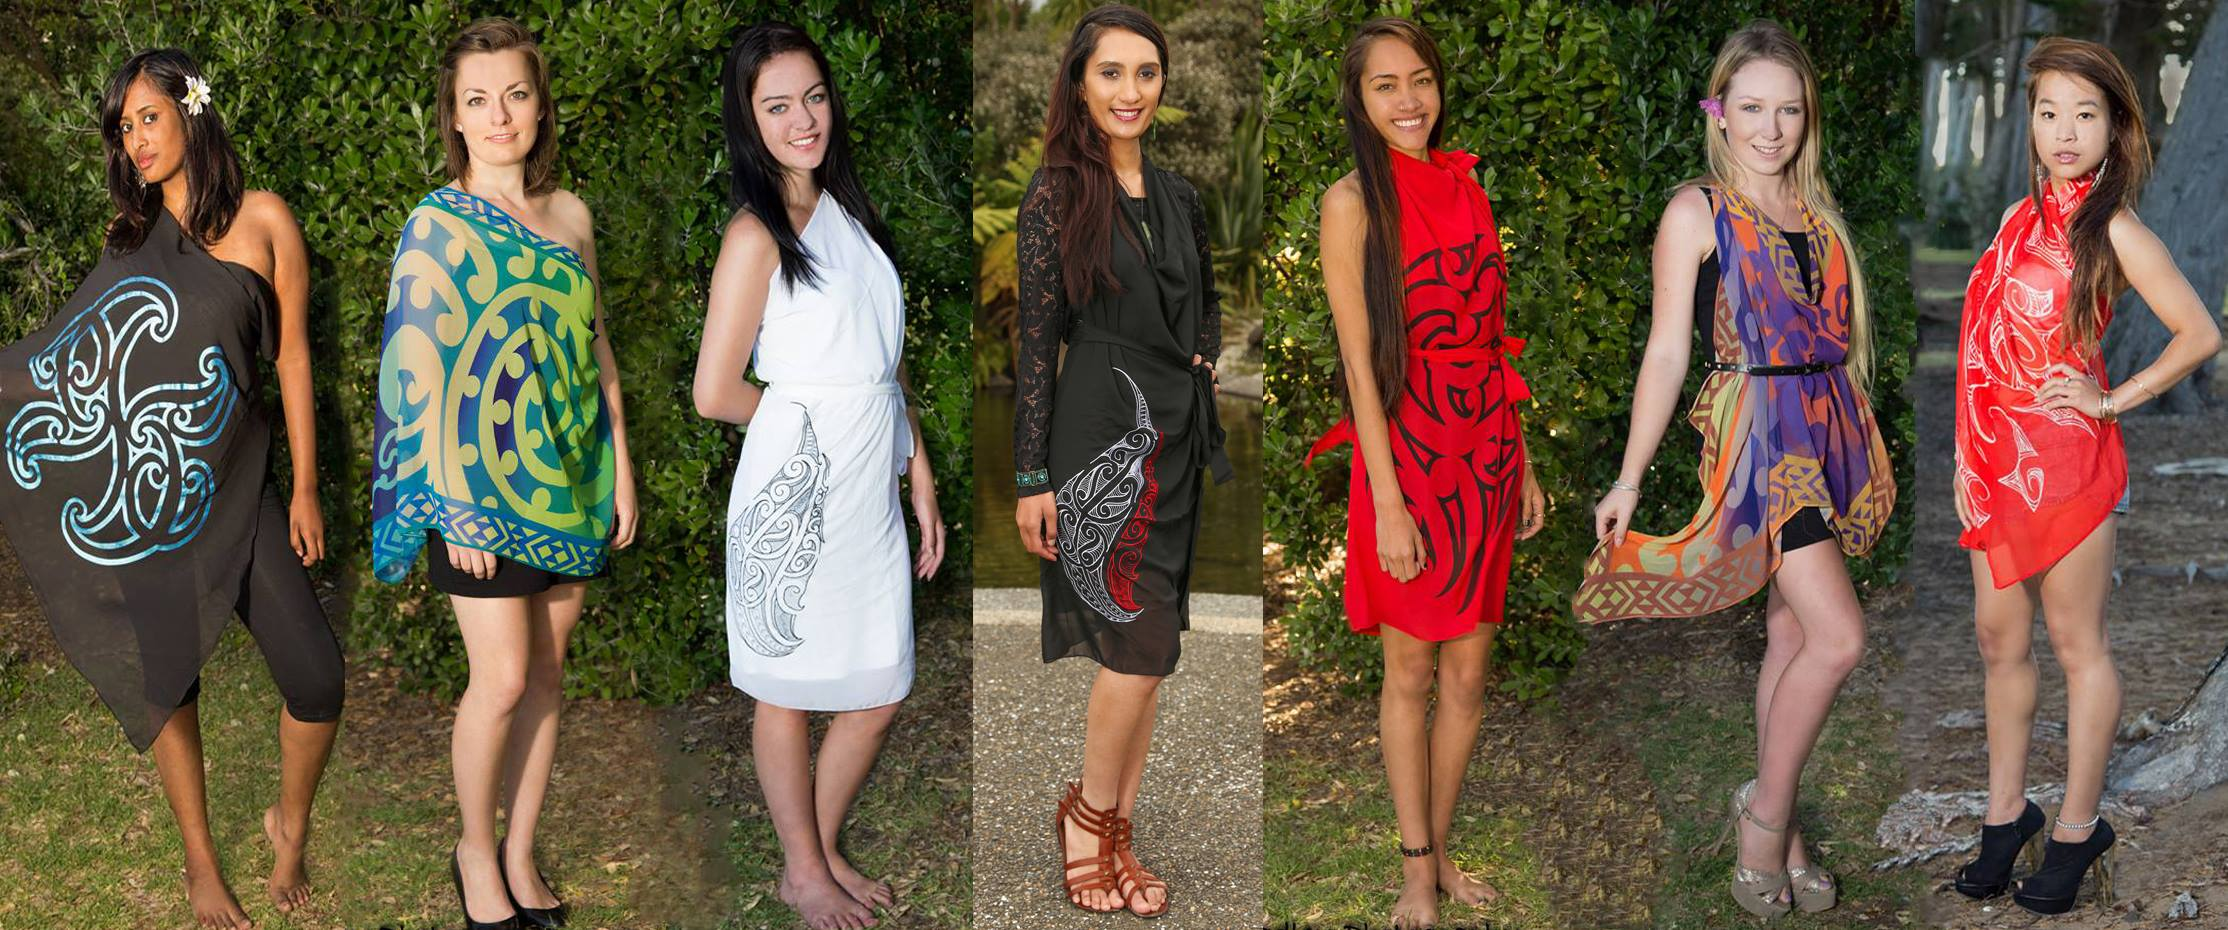 MSA 2014 contestants (left to right) Shaayal Gounden Helene Holman Kayla Dittmer Sarah Brodrick (Miss South Auckland 201213) Maria Mafi Shannon Barry Aysaas Tang